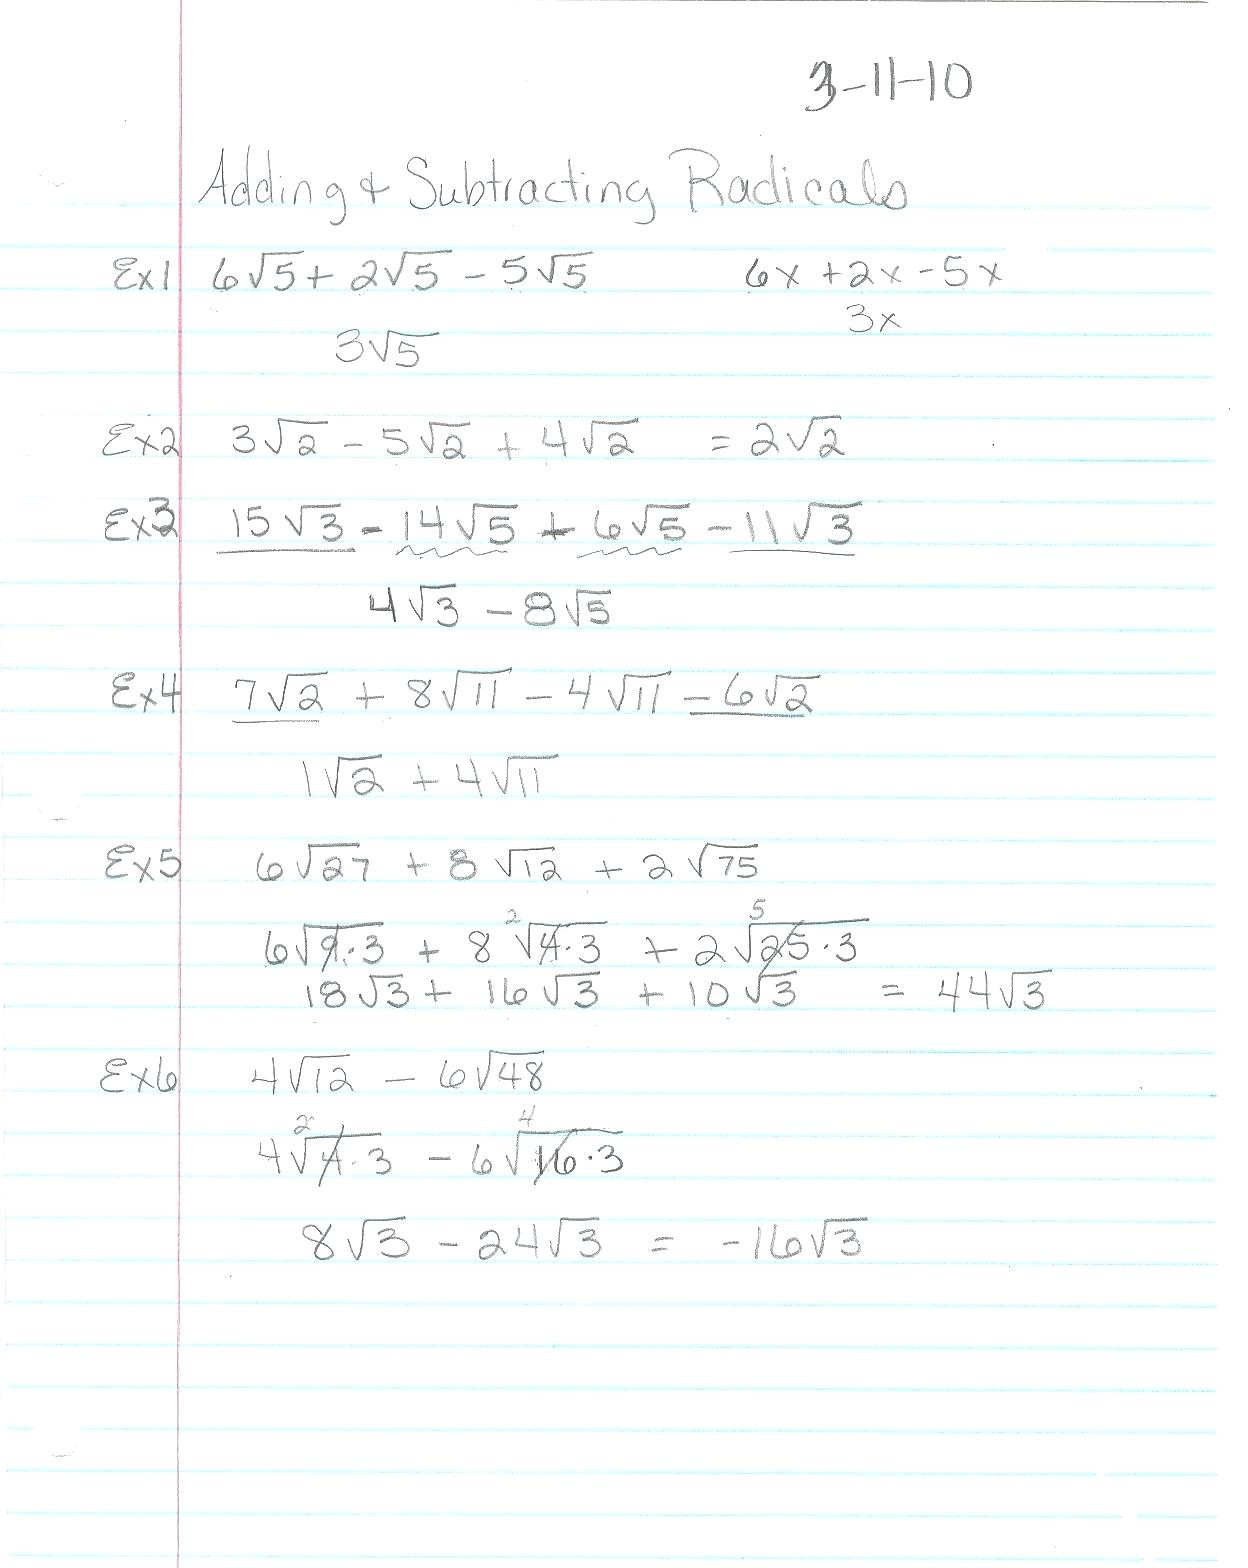 Simplifying Radicals Worksheet 1